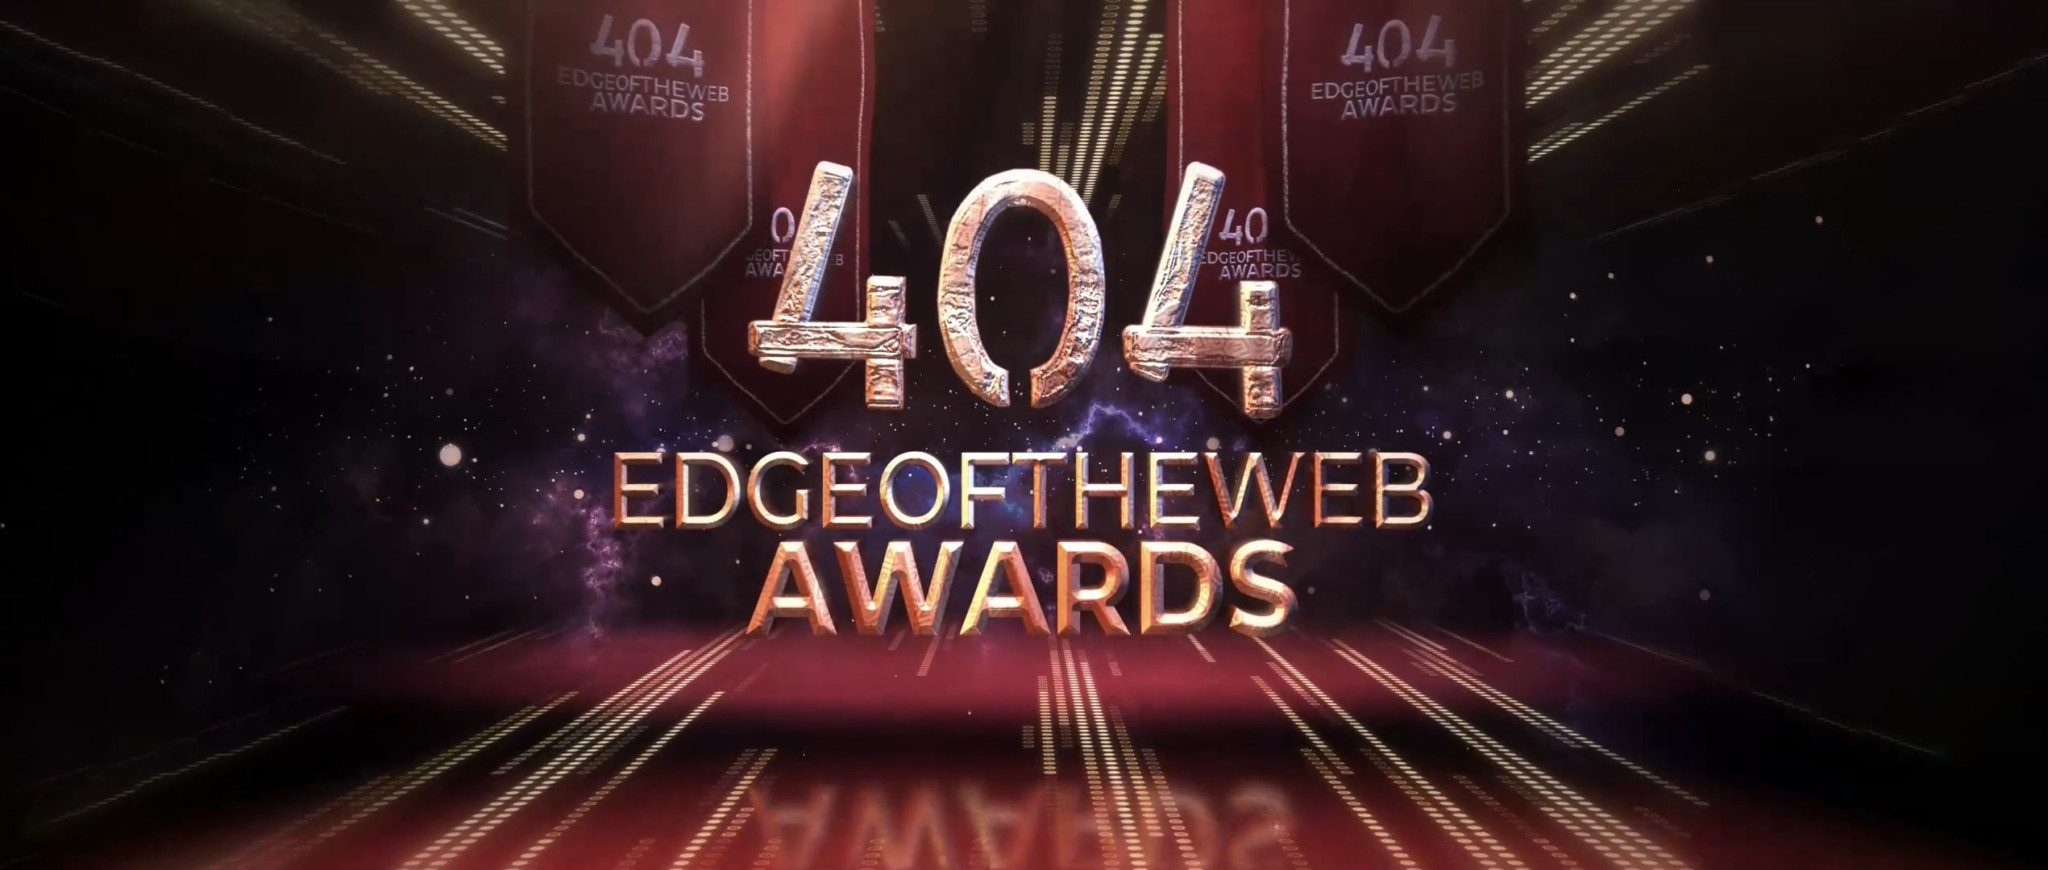 EDGE 404 Featured Image